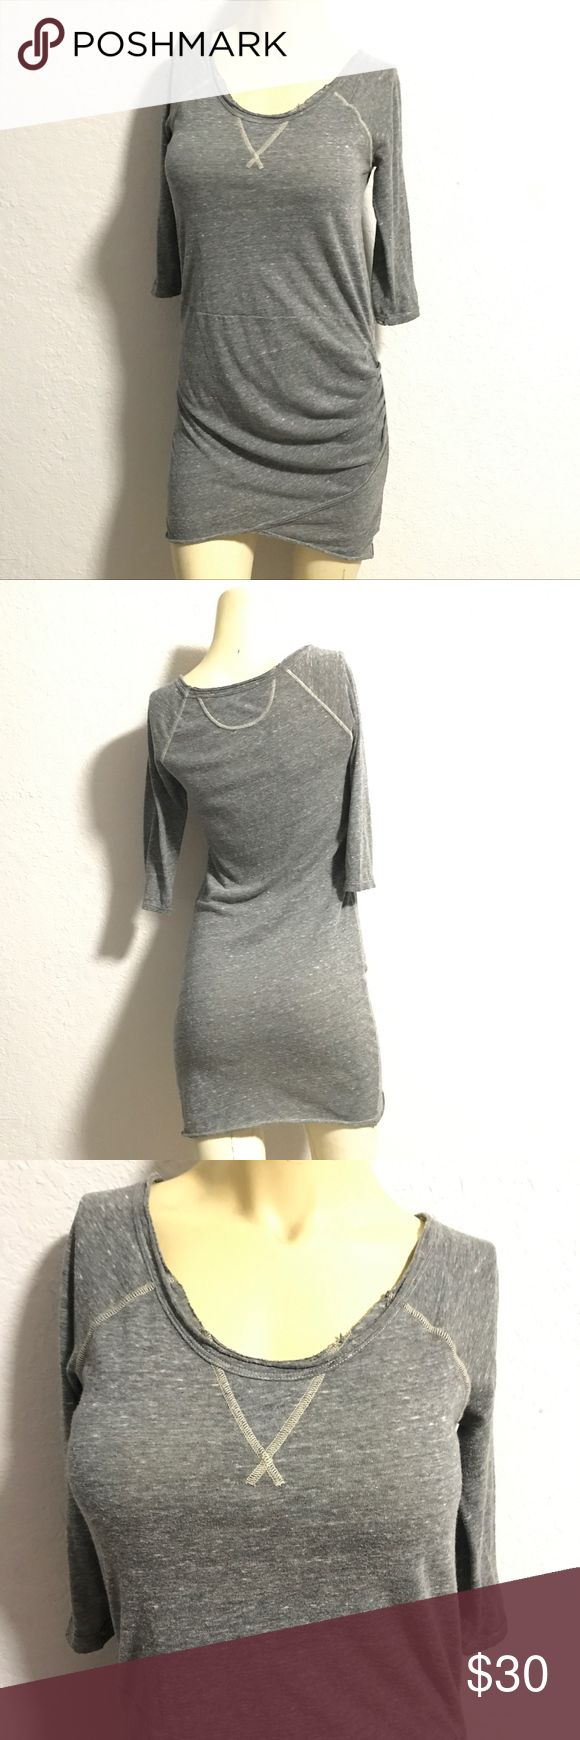 Free People Beach Soft Cotton Dress This size M FP beach dress is soooo much better in person! The side ruching allows you to pull it up shorter for a more relaxed fit. Perfect on its own, or with leggings, this dress will take you into Fall and beyond! Great heathered grey fabric, is washable and packable! Super soft and comfy, perfect everyday dress!! Free People Dresses Mini